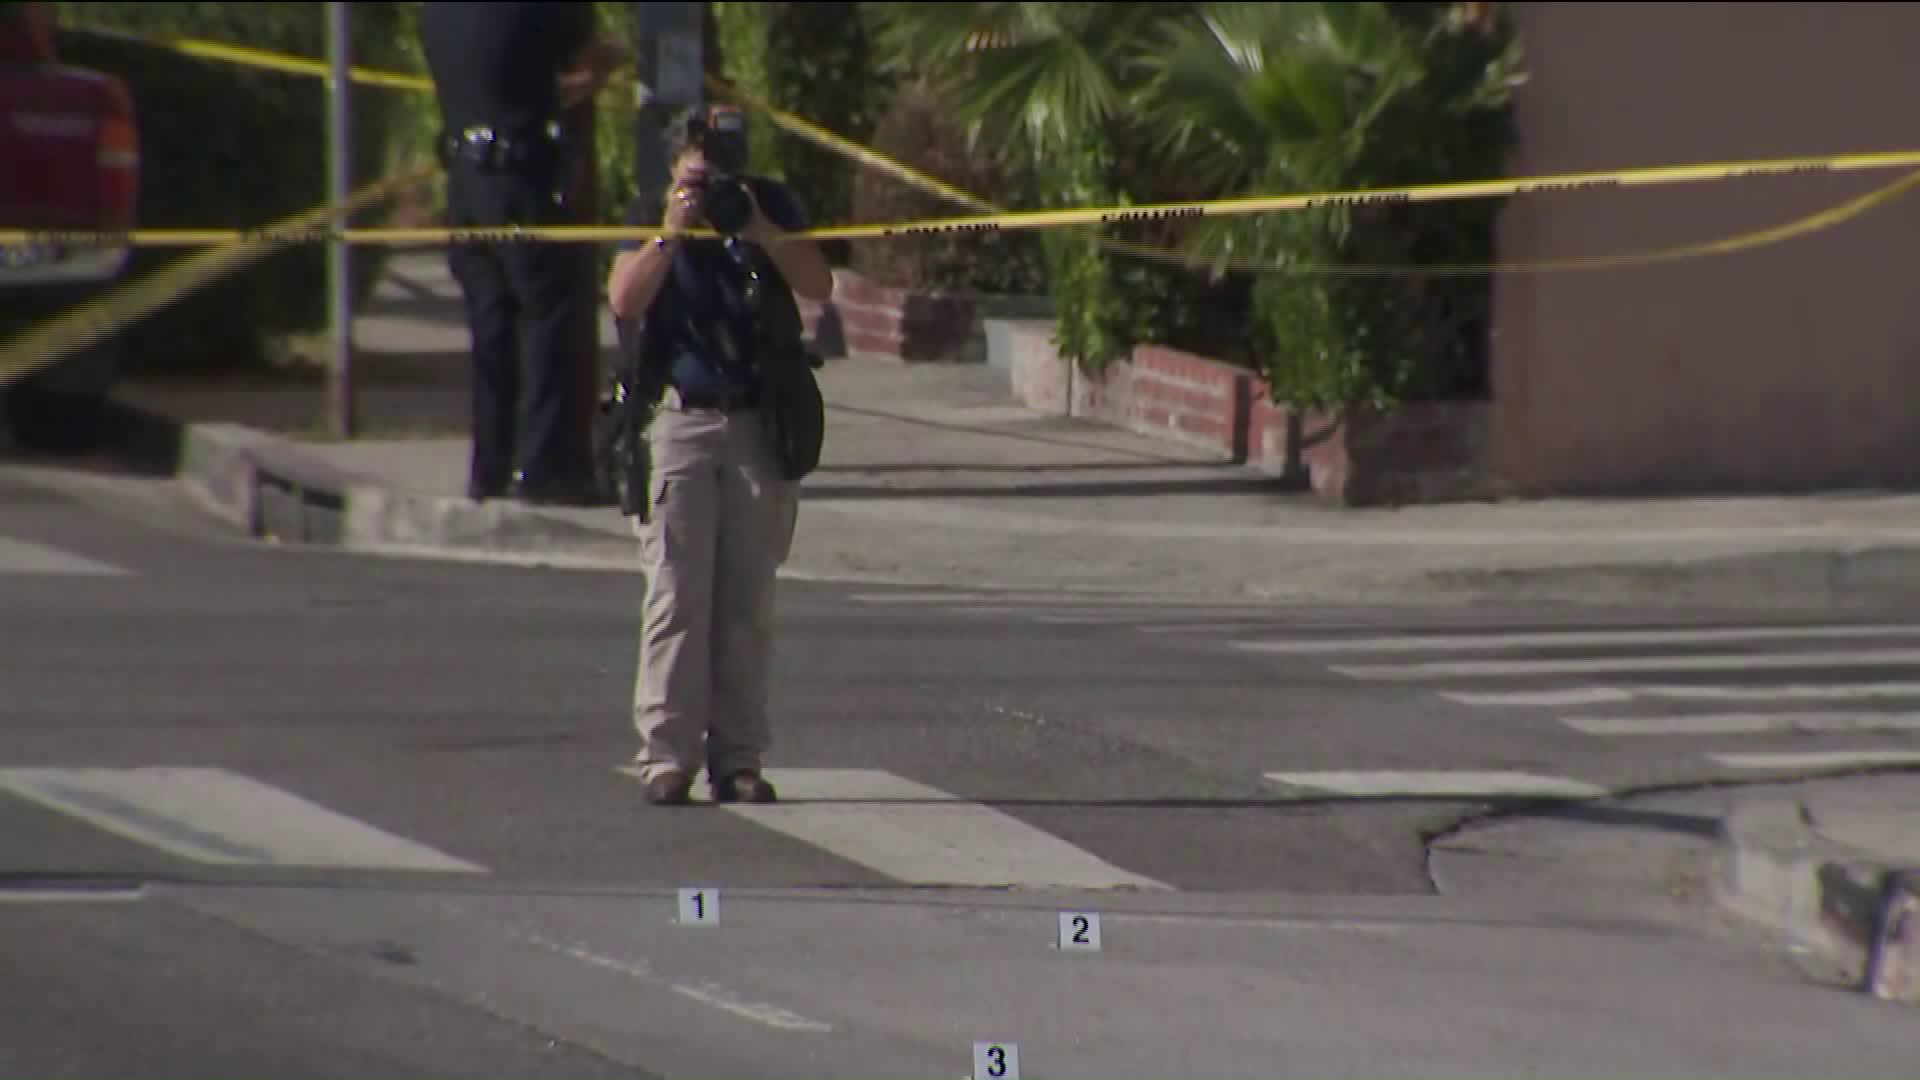 Officials investigate the scene of a shooting that left two people wounded in Los Angeles' Pico-Union neighborhood on Aug. 6, 2019. (Credit: KTLA)